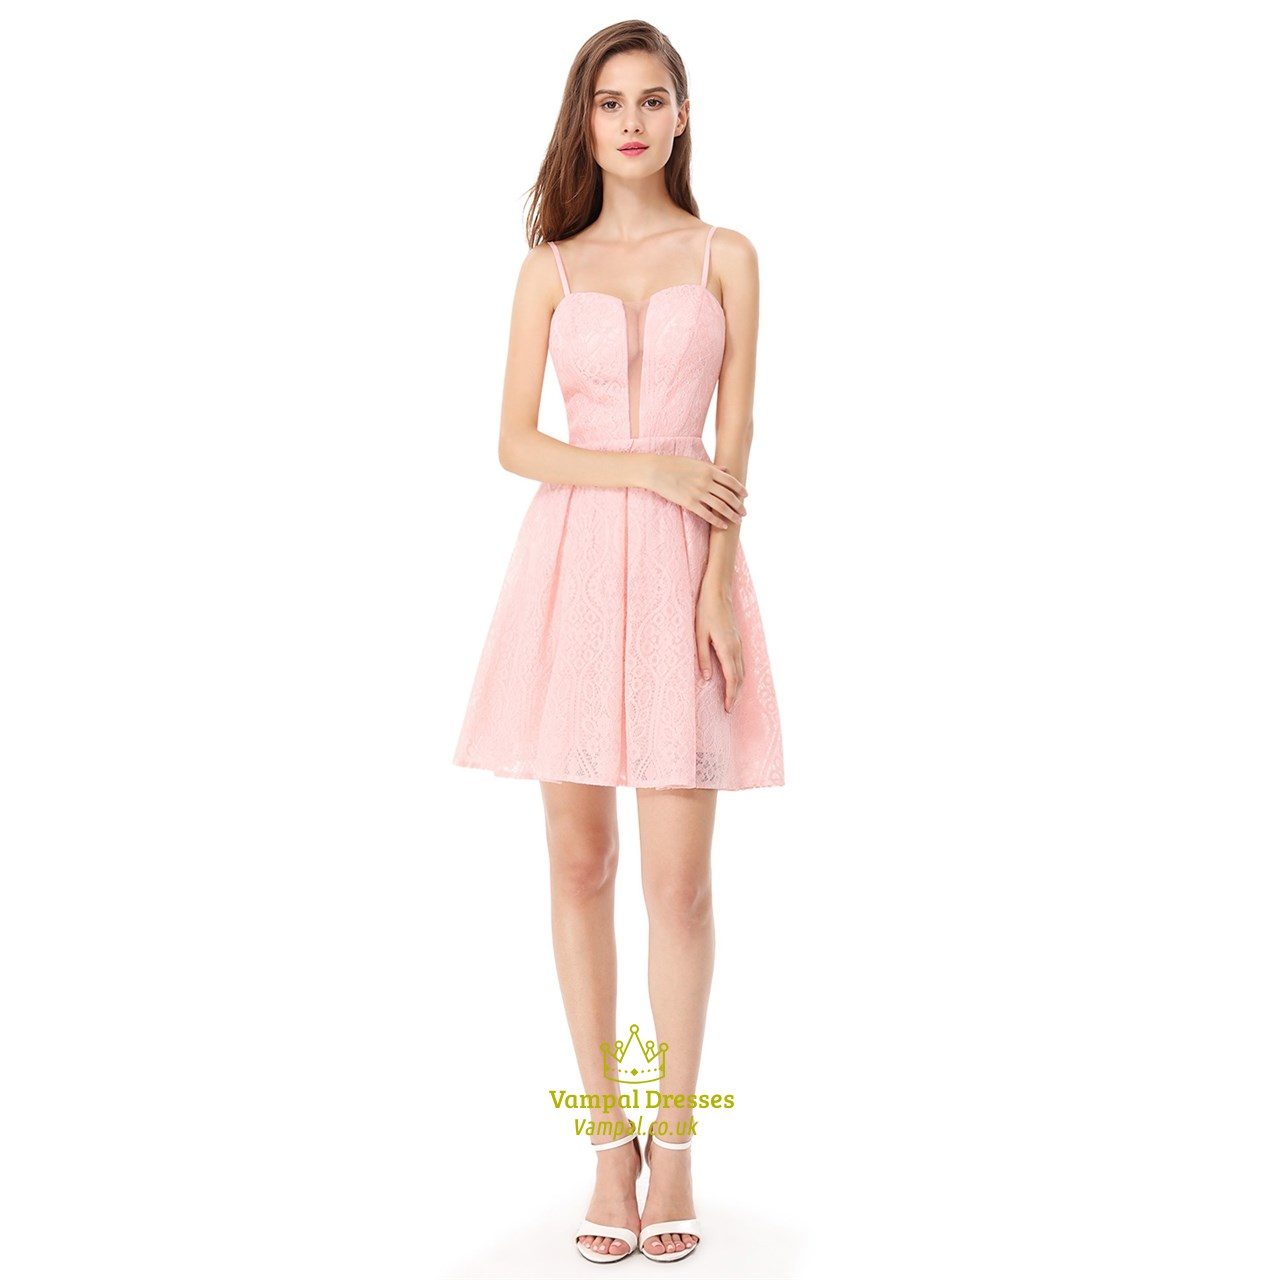 4872f5846ce Pink Spaghetti Strap Short Lace Fit And Flare Dress With Sheer Front SKU  -FS1795